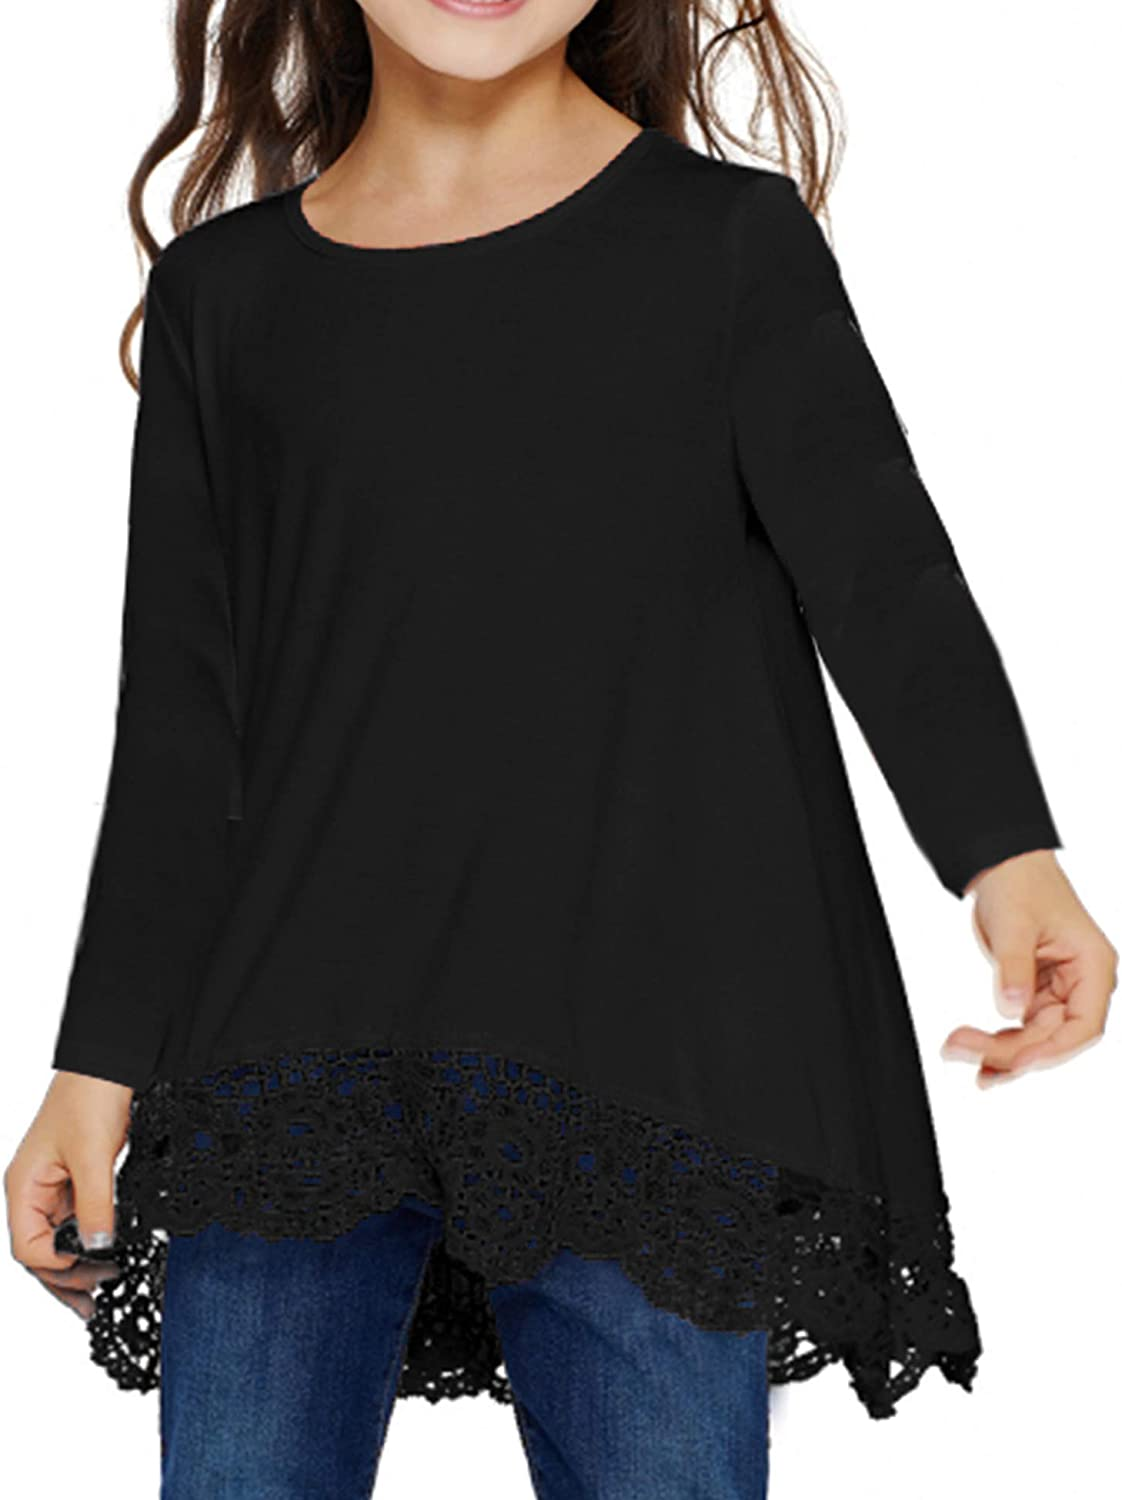 Arshiner Girls Casual Tunic Tops Long Sleeve Loose Soft Blouse T-Shirt for 4-13 Years: Clothing